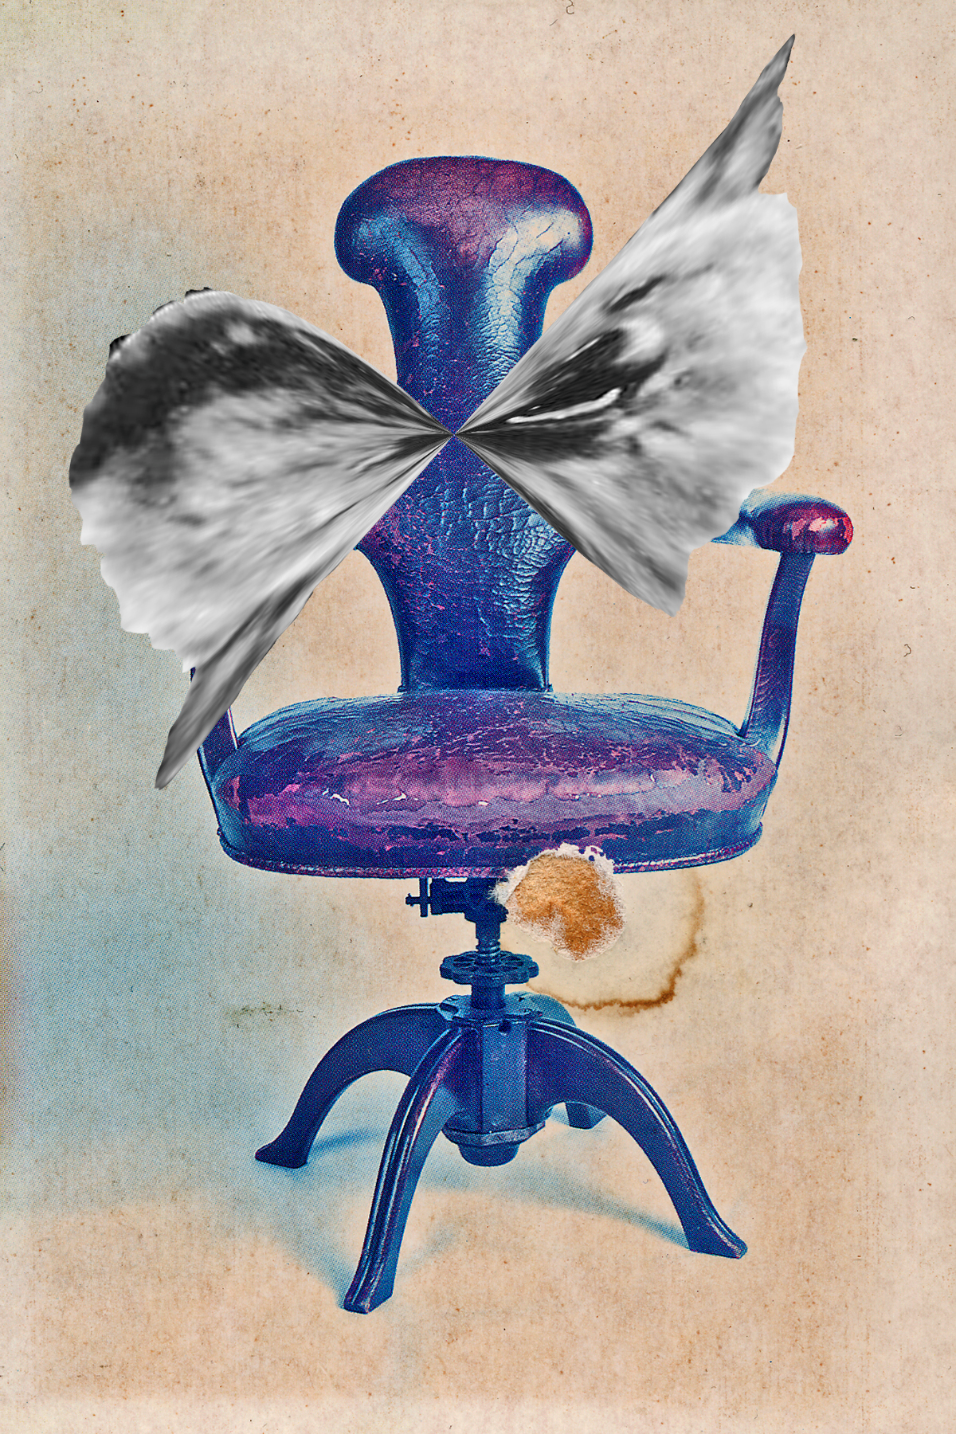 Jofi/SF Chair 2011, photo collage, inkjet print, 6 x 4""